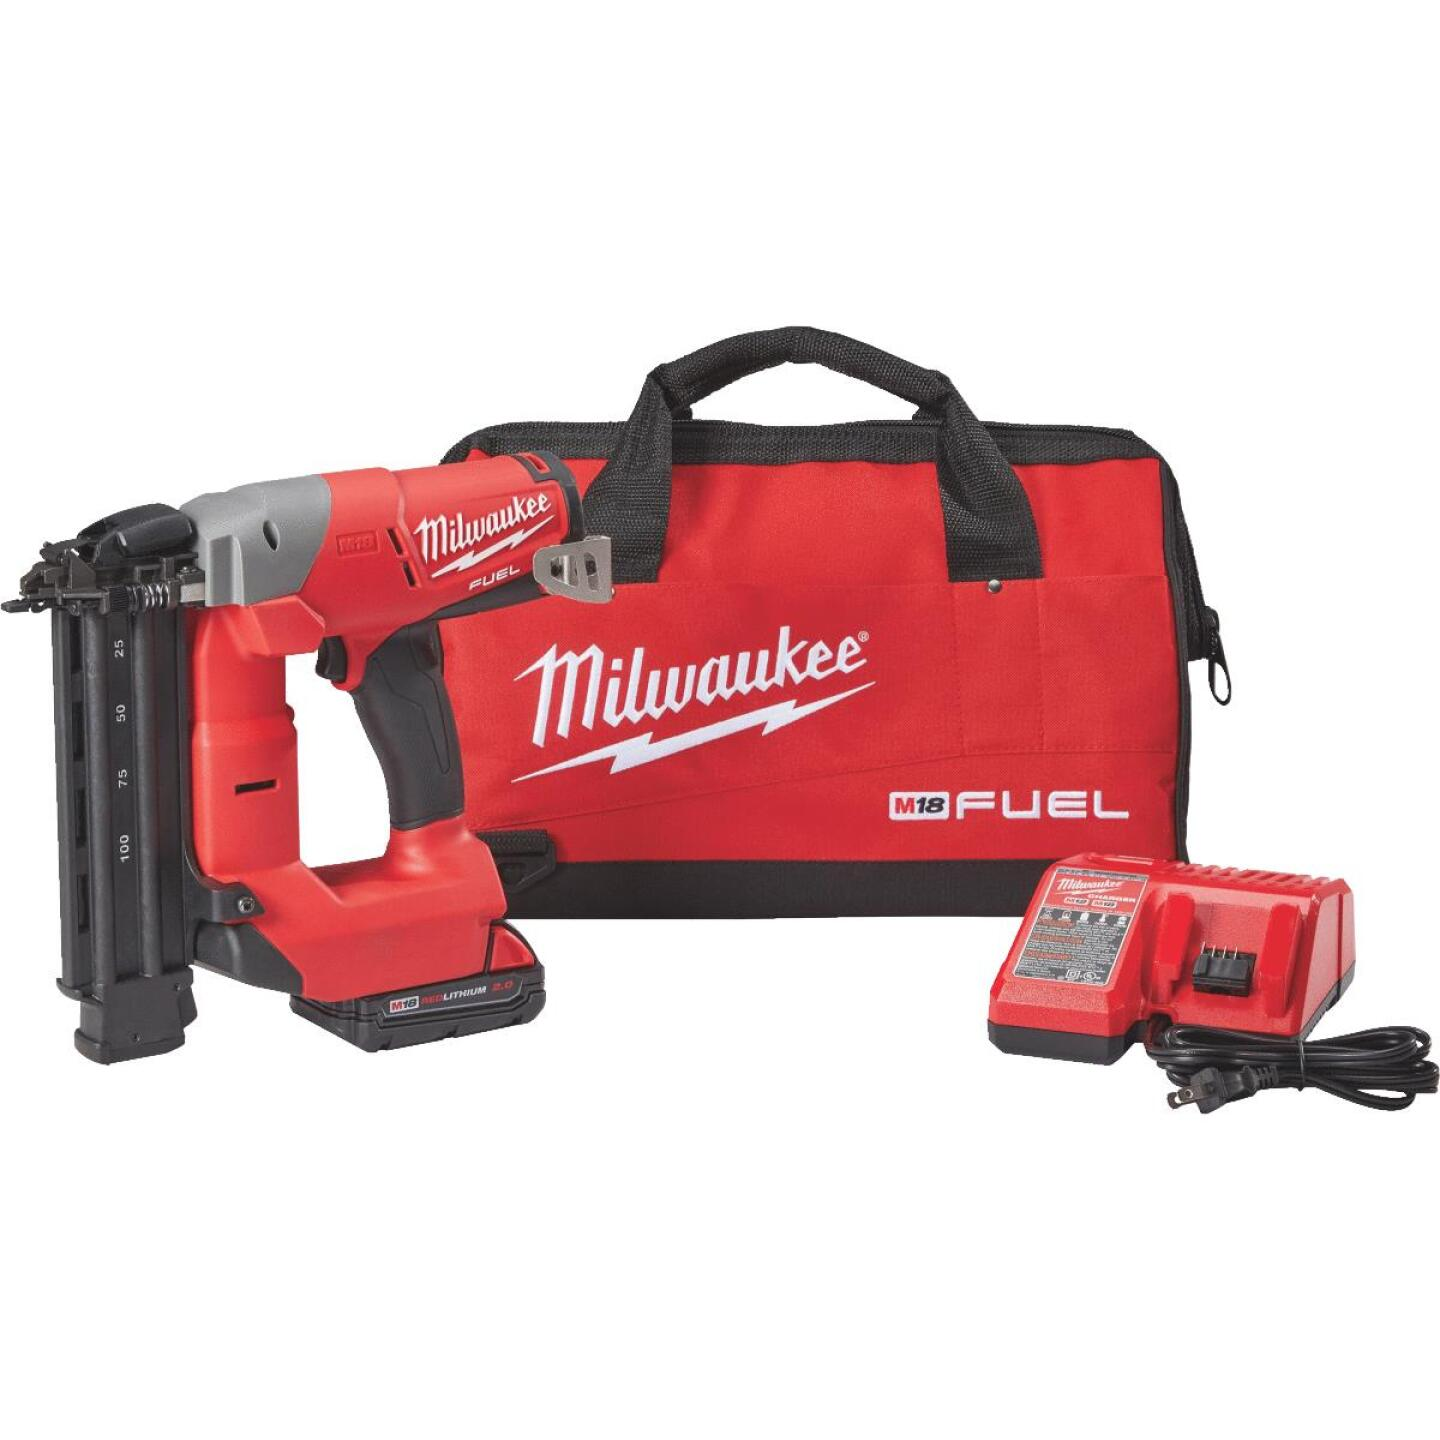 Milwaukee M18 FUEL 18 Volt Lithium-Ion Brushless 18-Gauge 2-1/8 In. Cordless Brad Nailer Kit Image 1